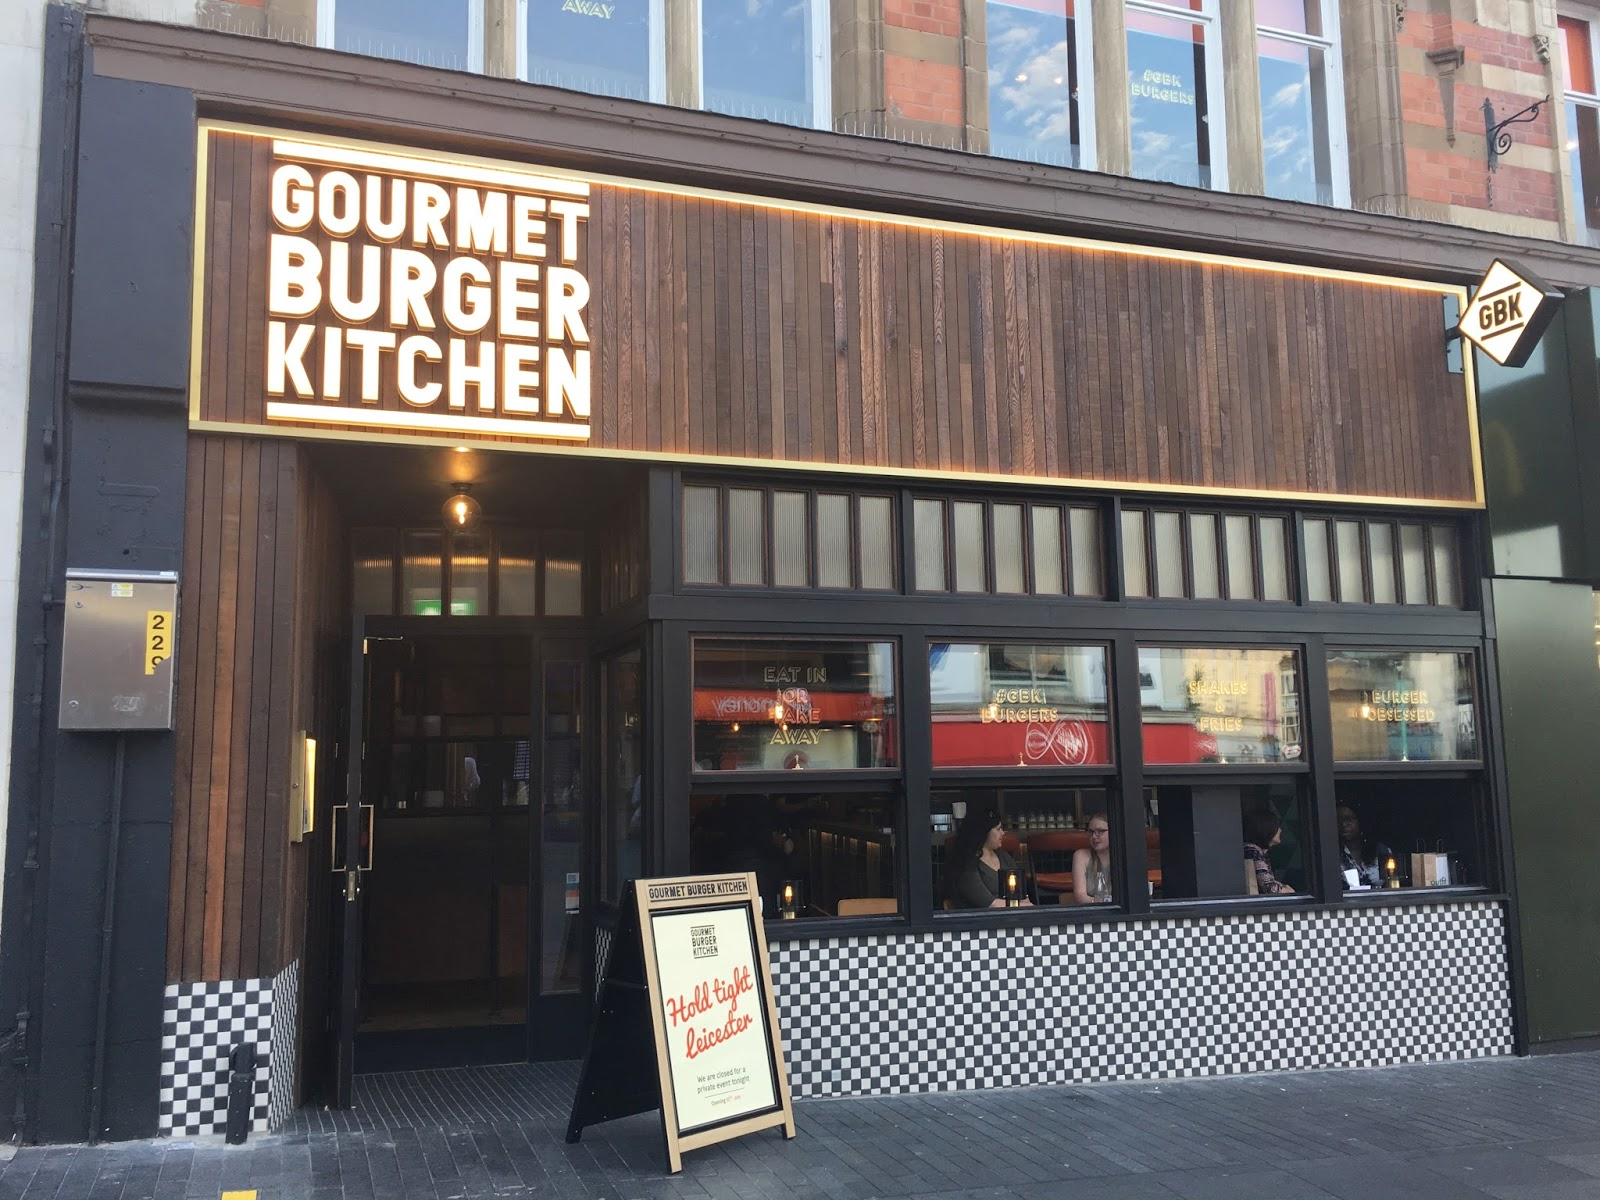 Gourmet burger kitchen \ review \ Leicester \ food \ burger \ Highcross shopping centre \ Priceless Life of Mine \ over 40 lifestyle blog